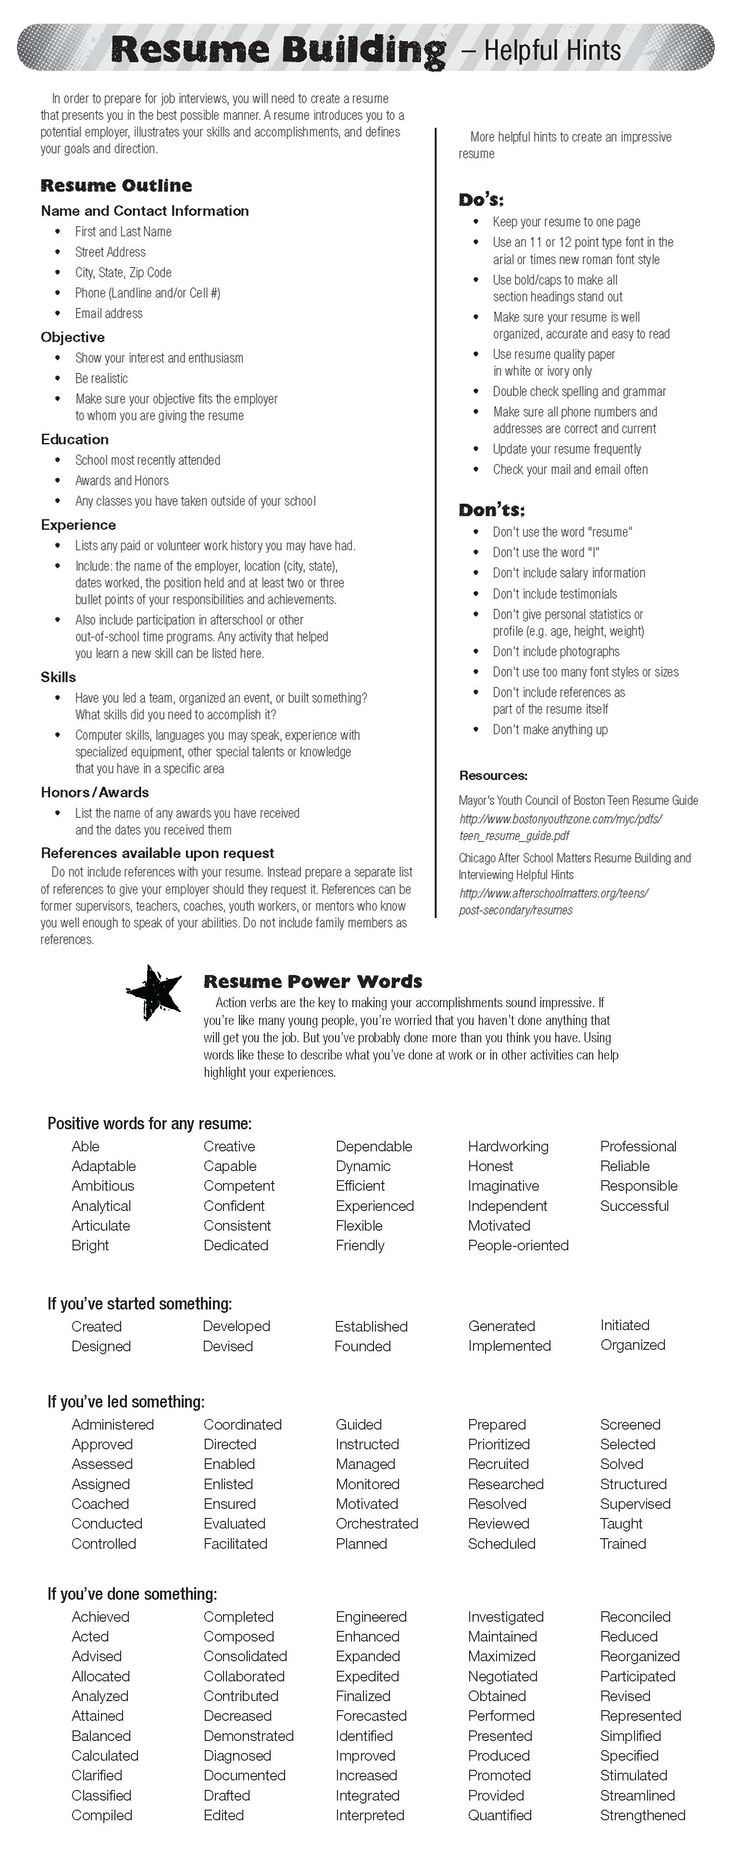 Opposenewapstandardsus  Remarkable  Ideas About Resume On Pinterest  Cv Format Resume Cv And  With Remarkable  Ideas About Resume On Pinterest  Cv Format Resume Cv And Resume Templates With Endearing Personal Skills List Resume Also Administrative Officer Resume In Addition Court Clerk Resume And Best Resume Cover Letters As Well As Data Analyst Resumes Additionally What Should A Resume Contain From Pinterestcom With Opposenewapstandardsus  Remarkable  Ideas About Resume On Pinterest  Cv Format Resume Cv And  With Endearing  Ideas About Resume On Pinterest  Cv Format Resume Cv And Resume Templates And Remarkable Personal Skills List Resume Also Administrative Officer Resume In Addition Court Clerk Resume From Pinterestcom